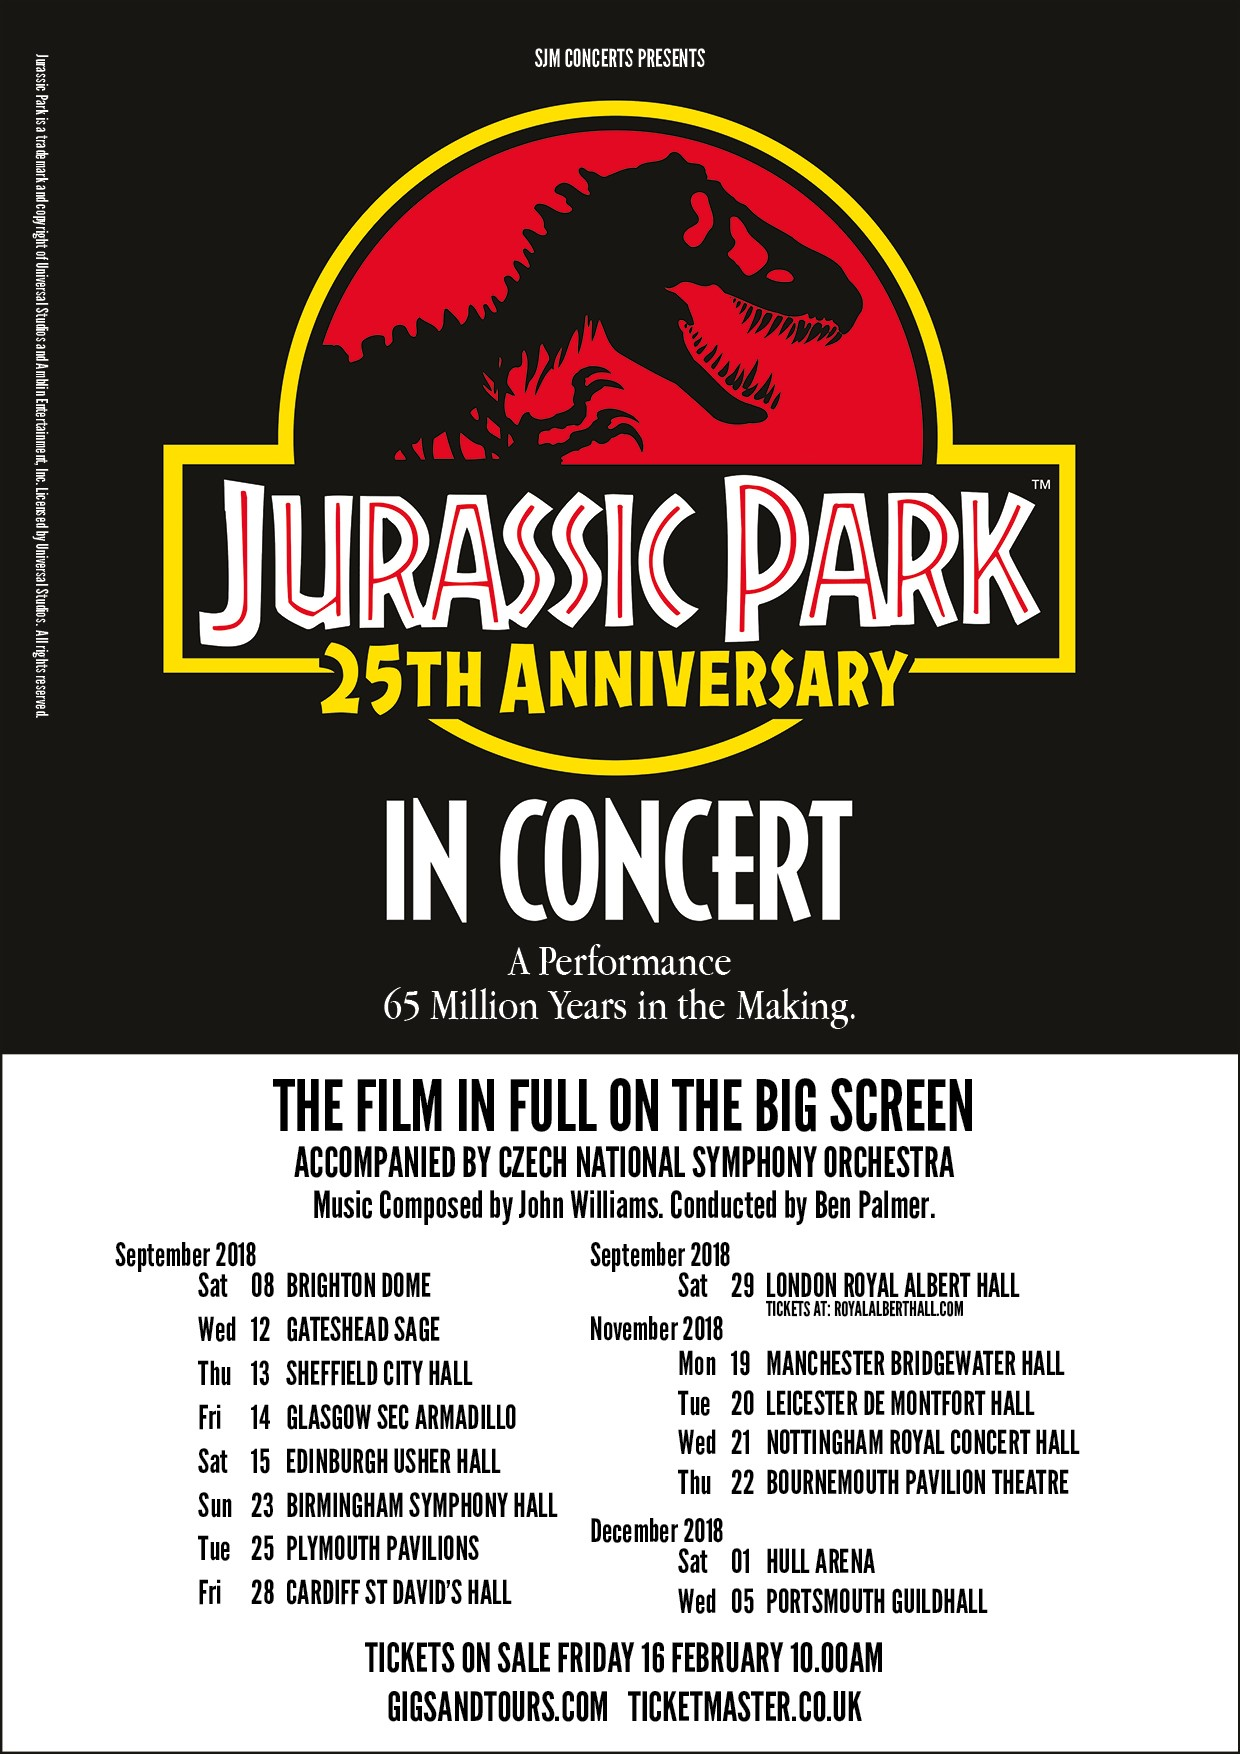 Jurassic Park Live will tour the Uk for the film's 25th anniversary